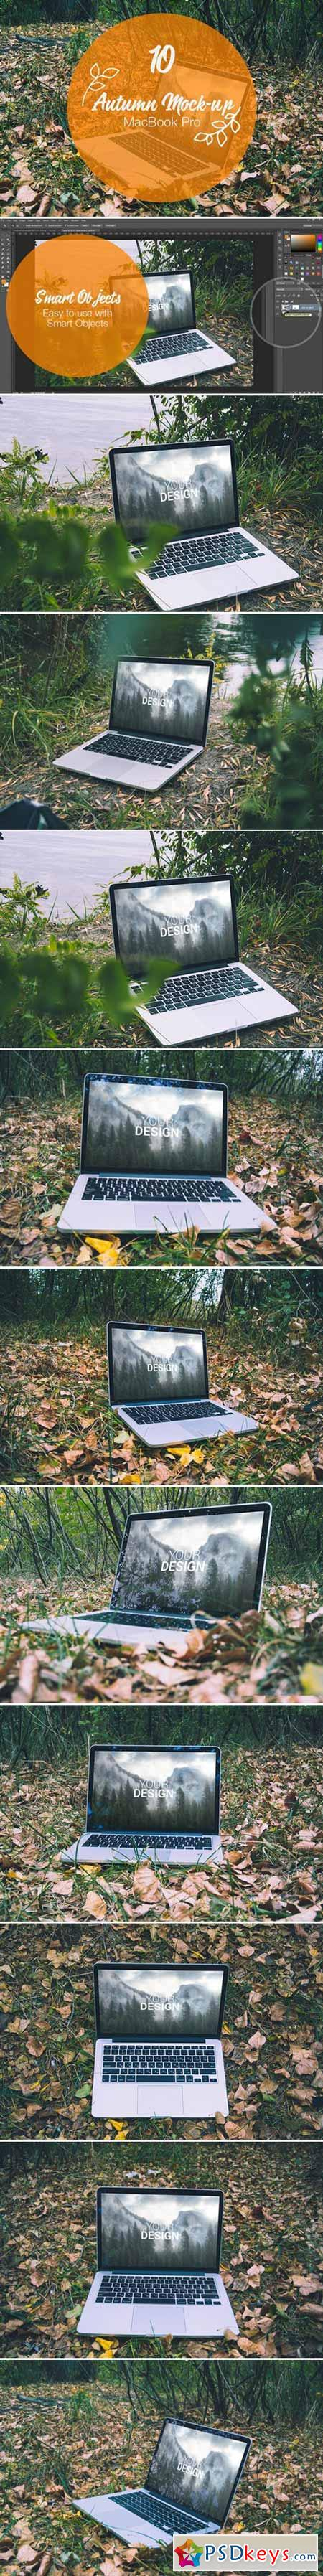 MacBook Pro Autumn mock-up 399884